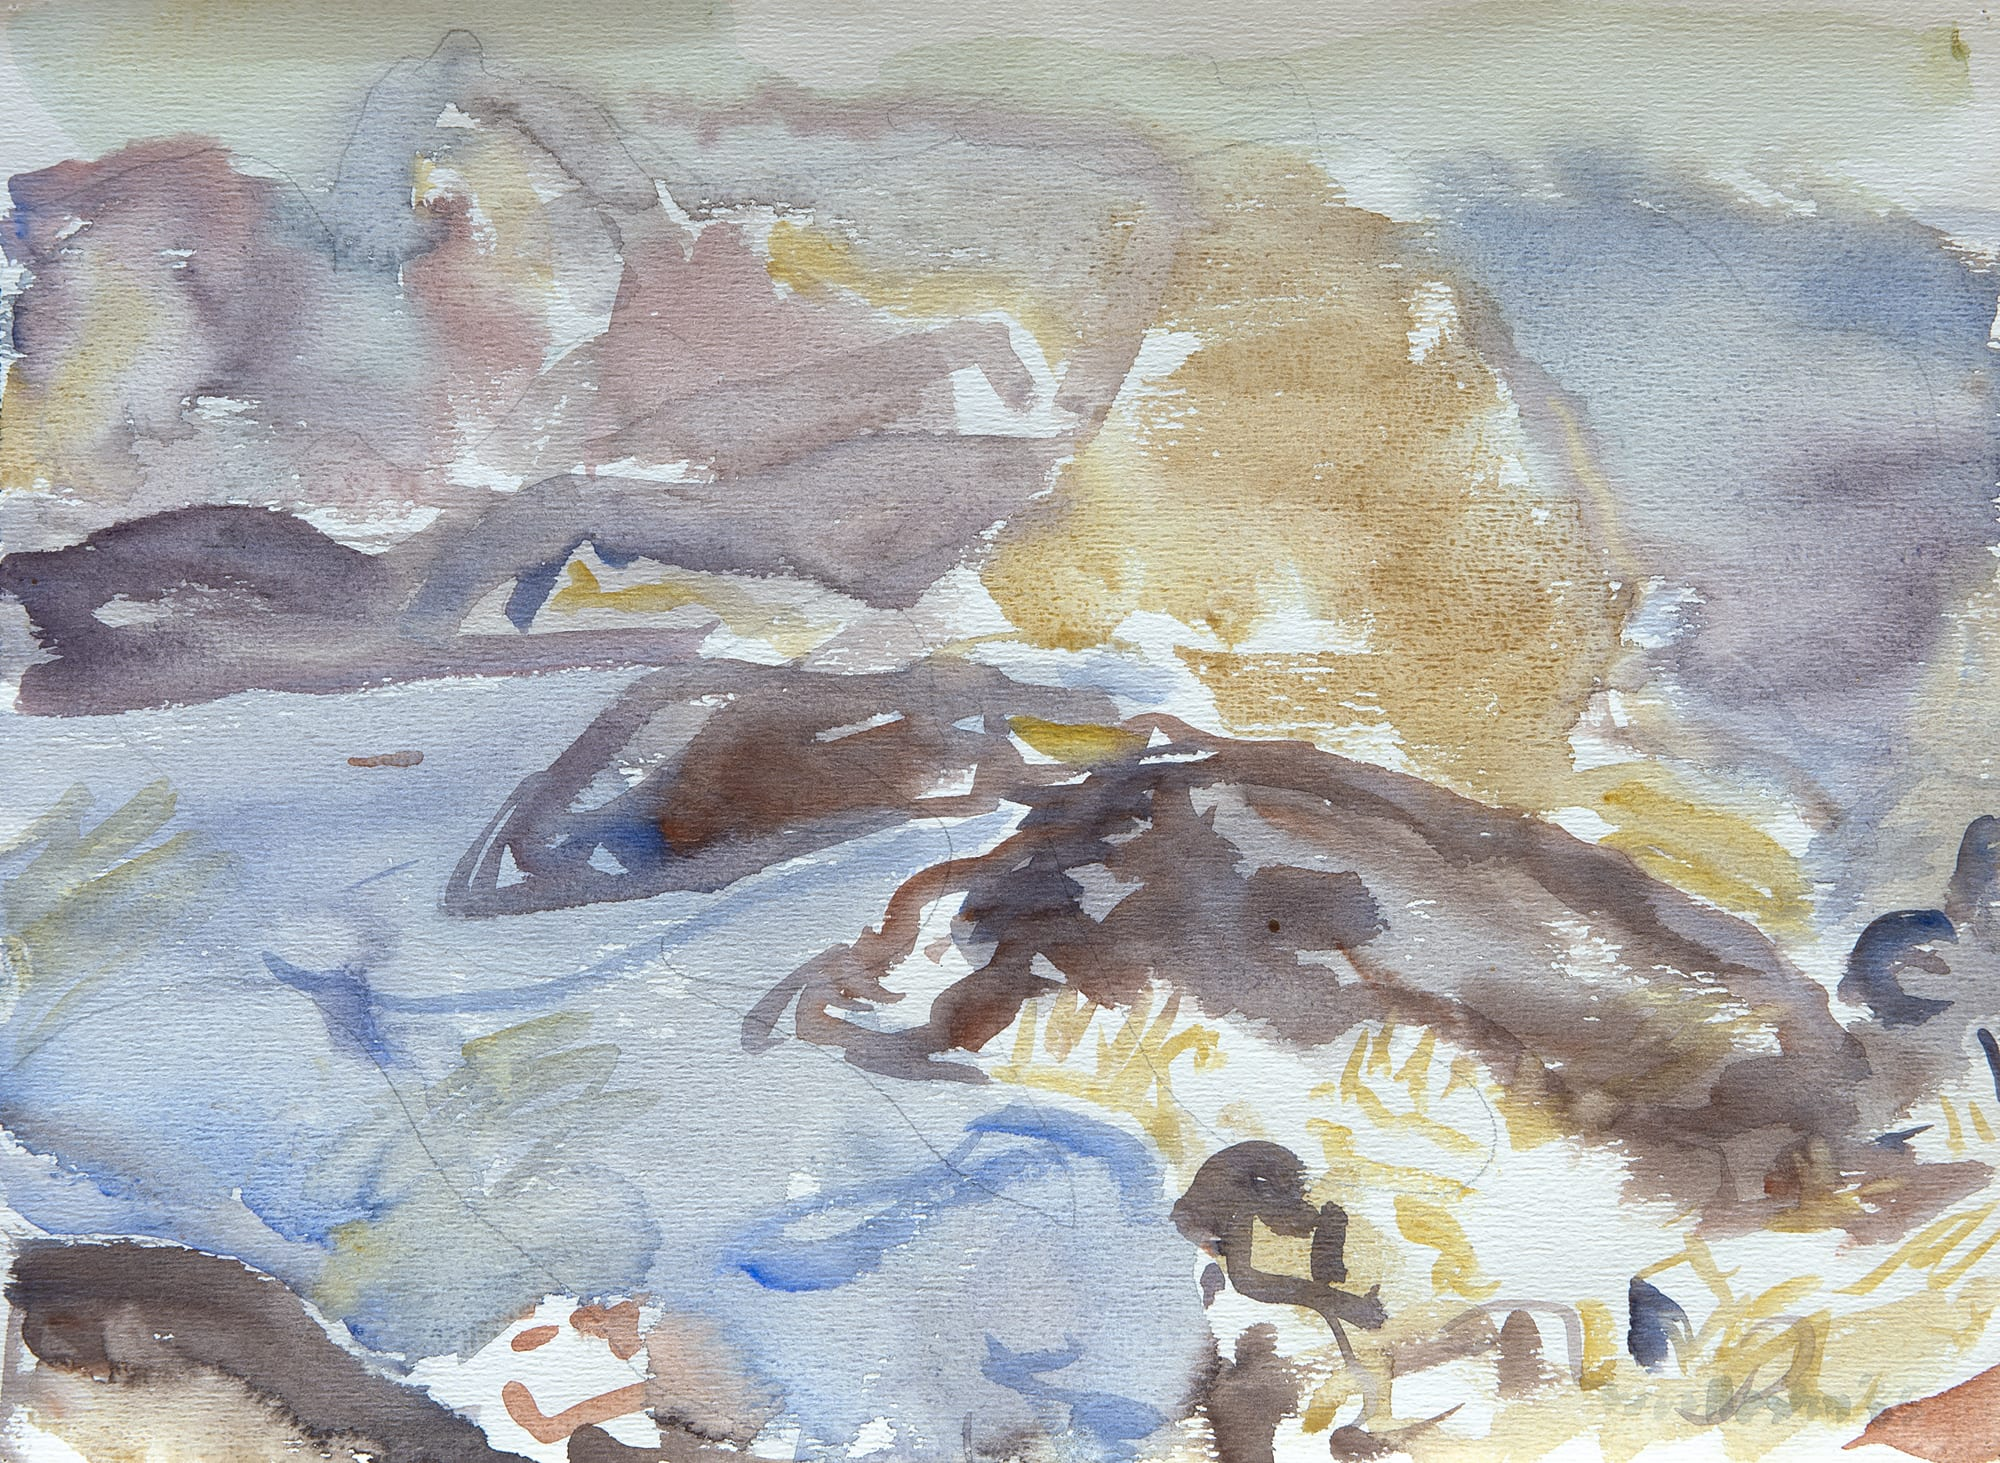 """<span class=""""link fancybox-details-link""""><a href=""""/exhibitions/116/works/artworks5089/"""">View Detail Page</a></span><div class=""""signed_and_dated"""">Signed bottom right corner</div> <div class=""""medium"""">Watercolour and pencil on paper</div> <div class=""""dimensions"""">11.1 x 14.9 in<br />28.1 x 37.9 cm<br /> (unframed)</div>"""